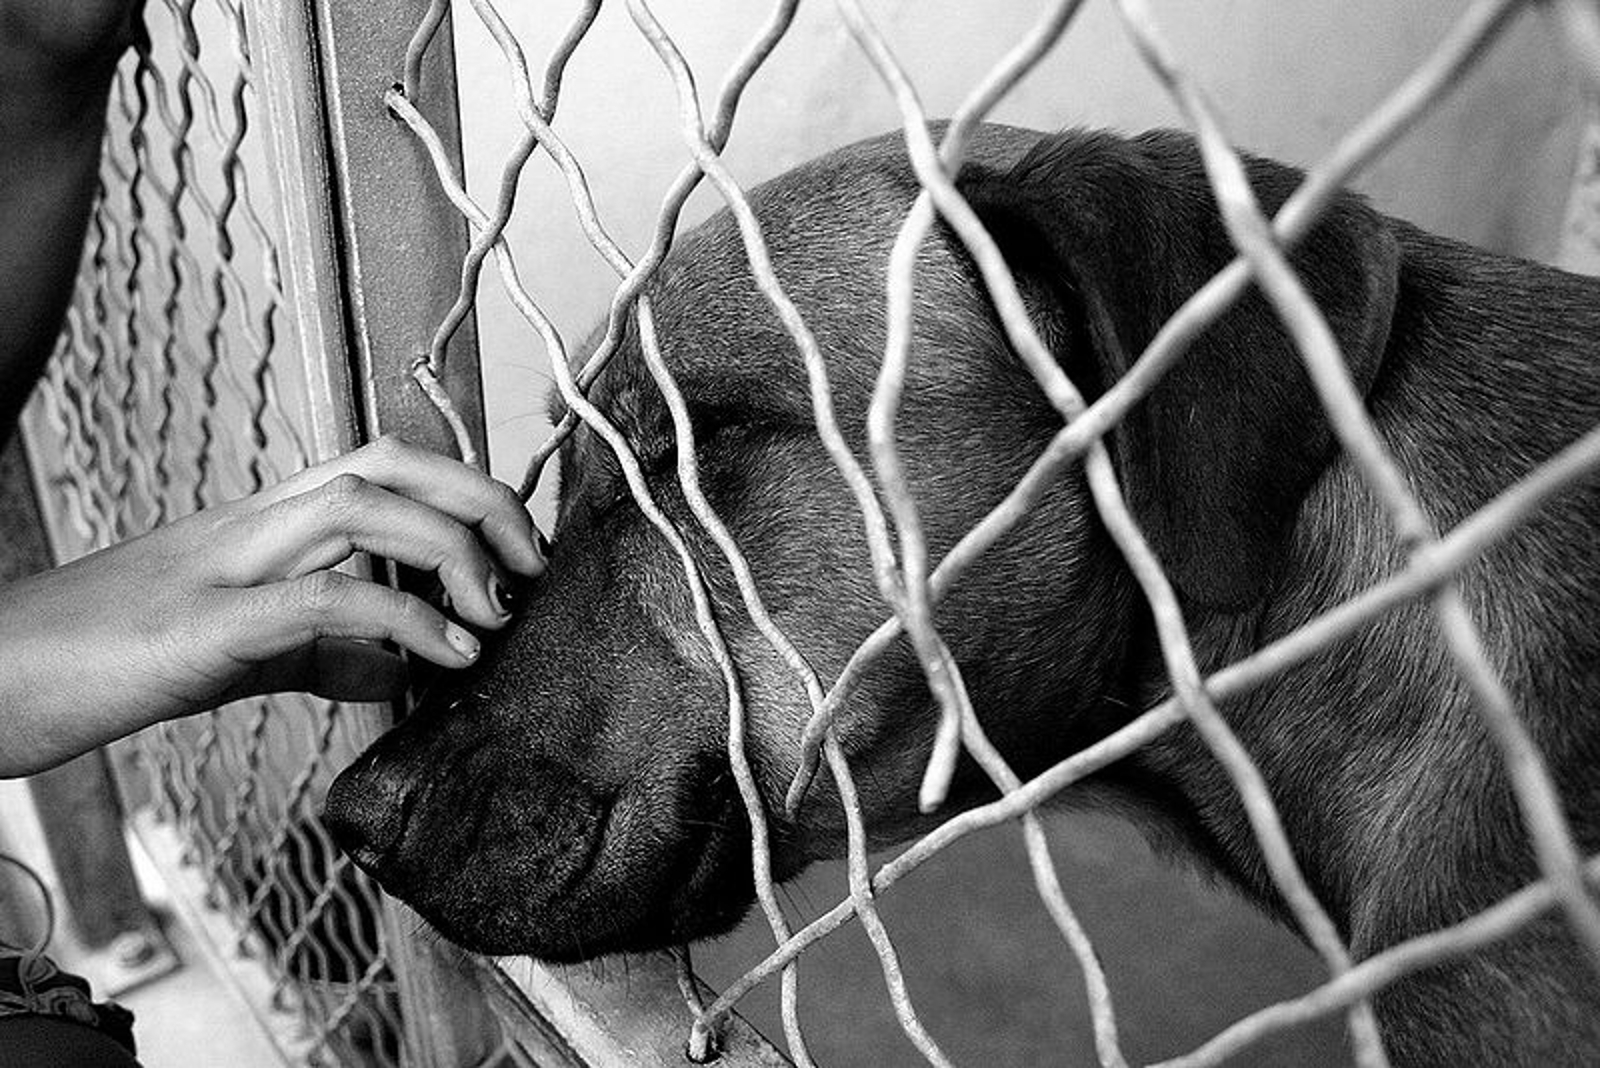 What I Learned From Volunteering at an Animal Shelter